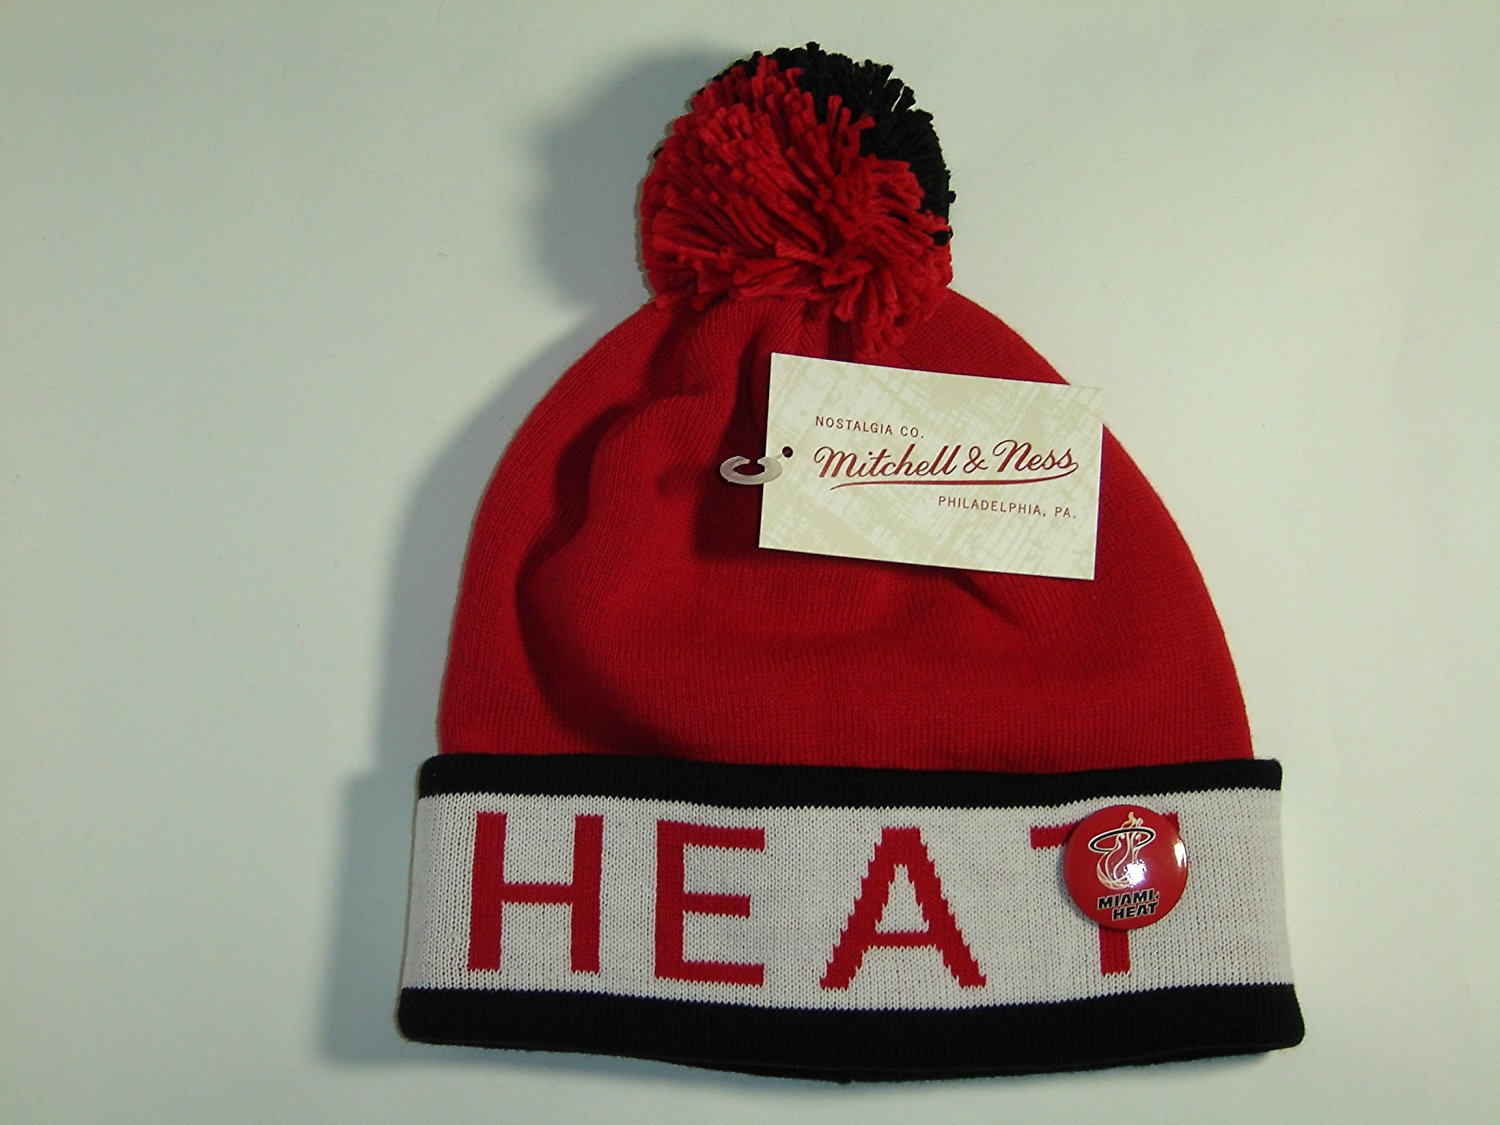 d7fae429caed2 Get Quotations · Mitchell and Ness NBA Miami Heat 2 ToneCuffed Knit Pom  Beanie Cap with Pin